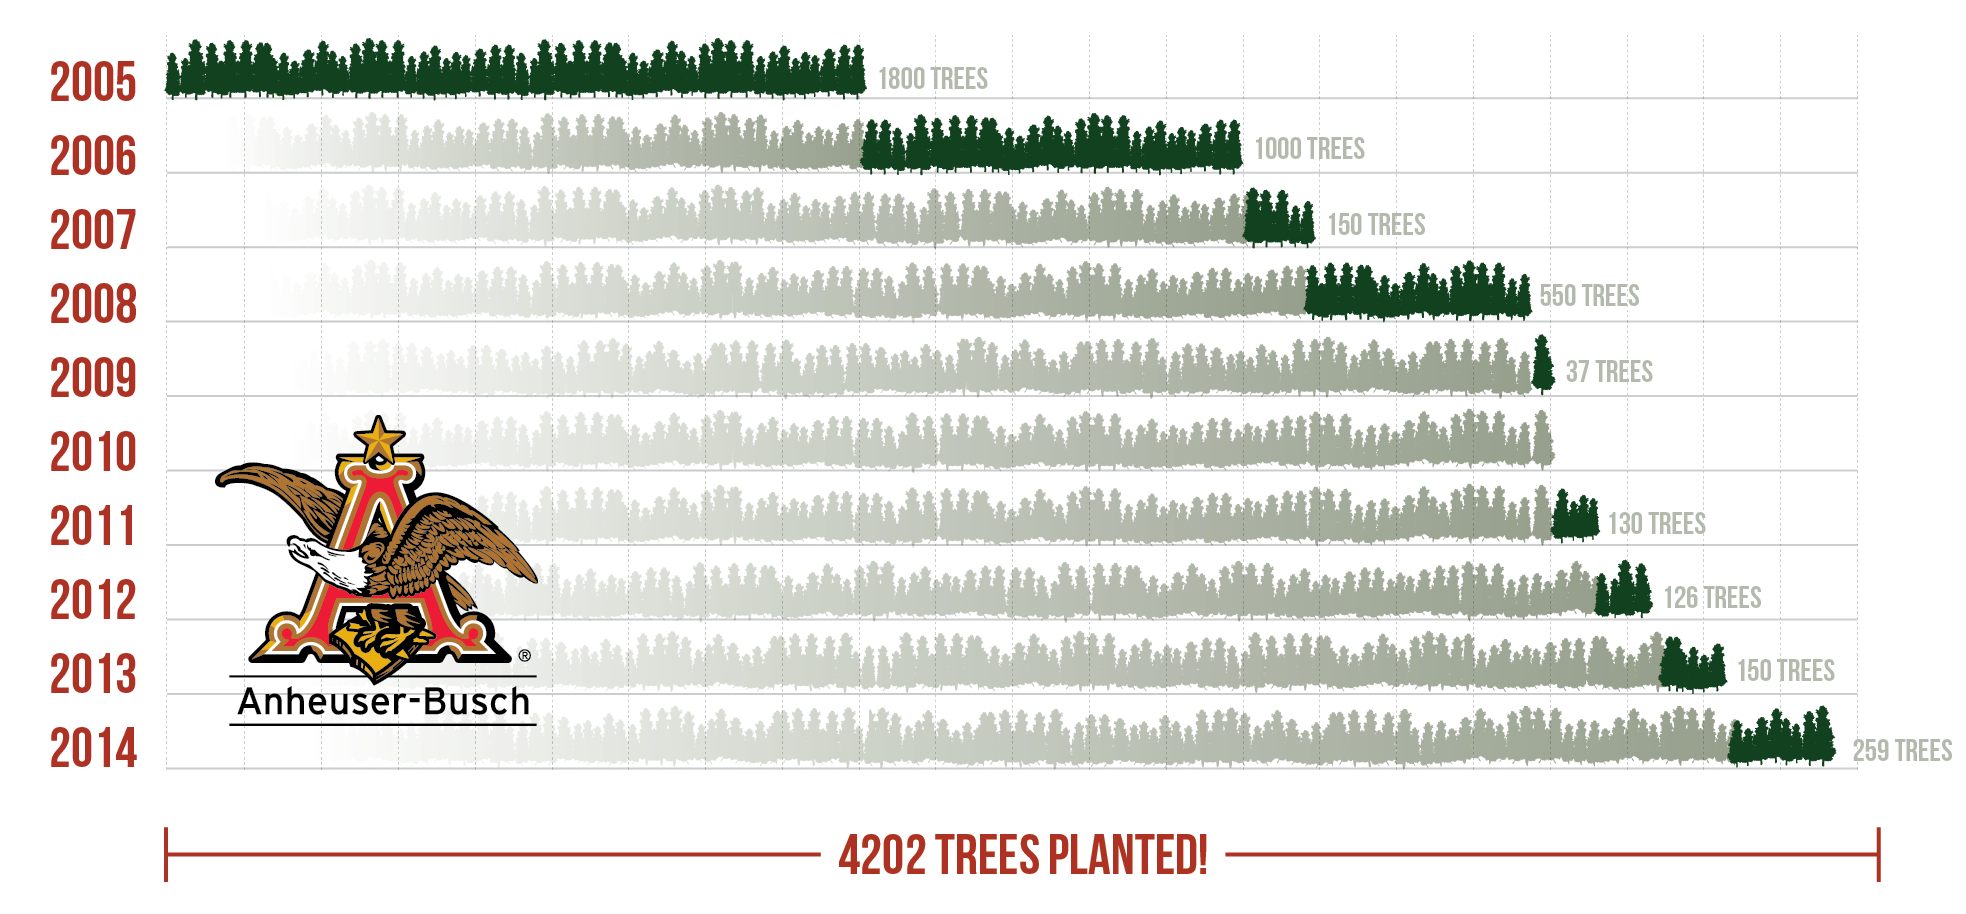 Anheuser-Busch Tree-Planting Event Infographic